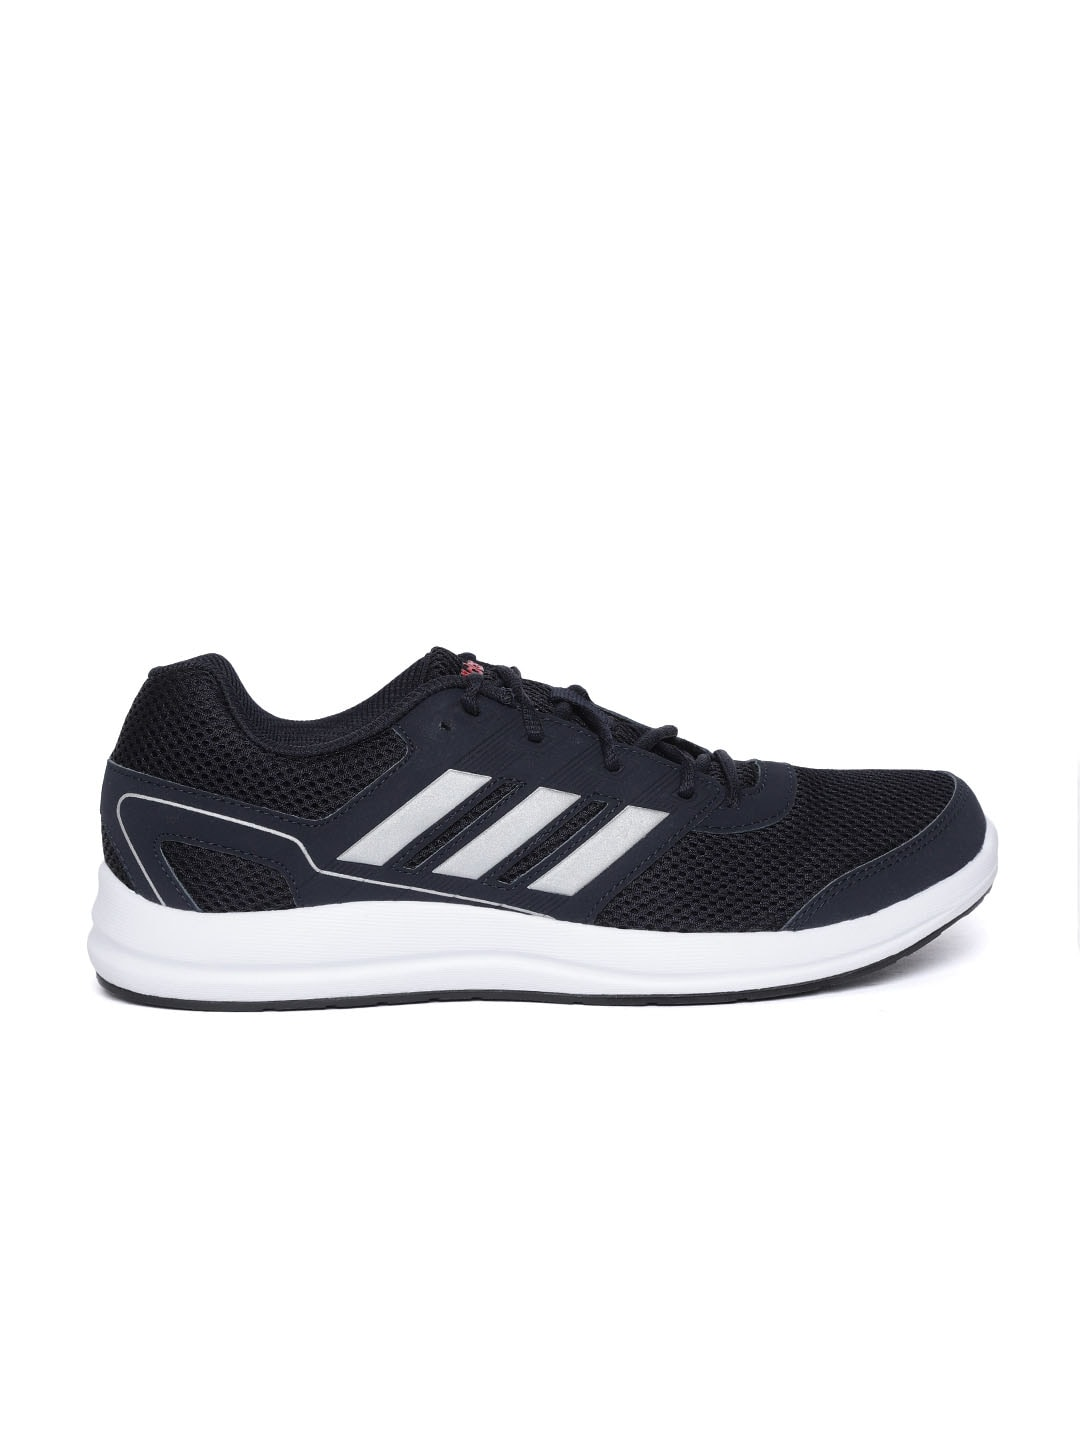 buy popular a47f5 02ac2 Adidas Shoes - Buy Adidas Shoes for Men   Women Online - Myntra